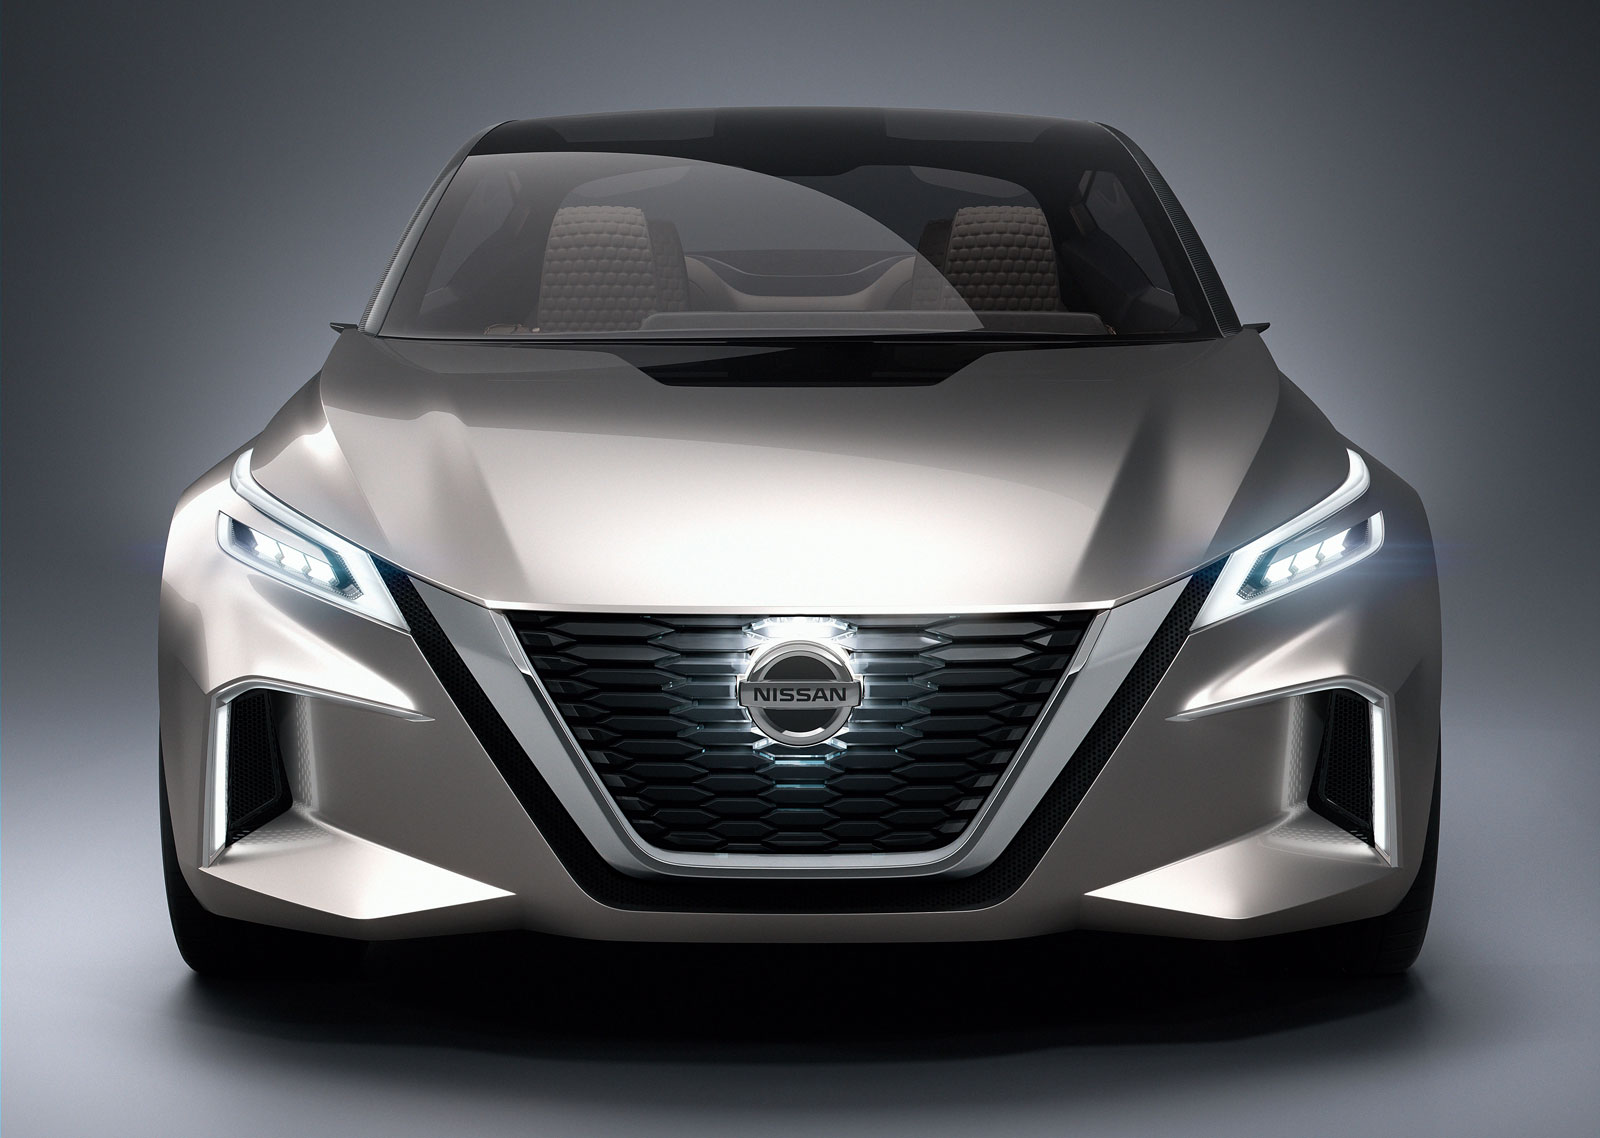 Nissan Vmotion 2.0 Concept - Car Body Design